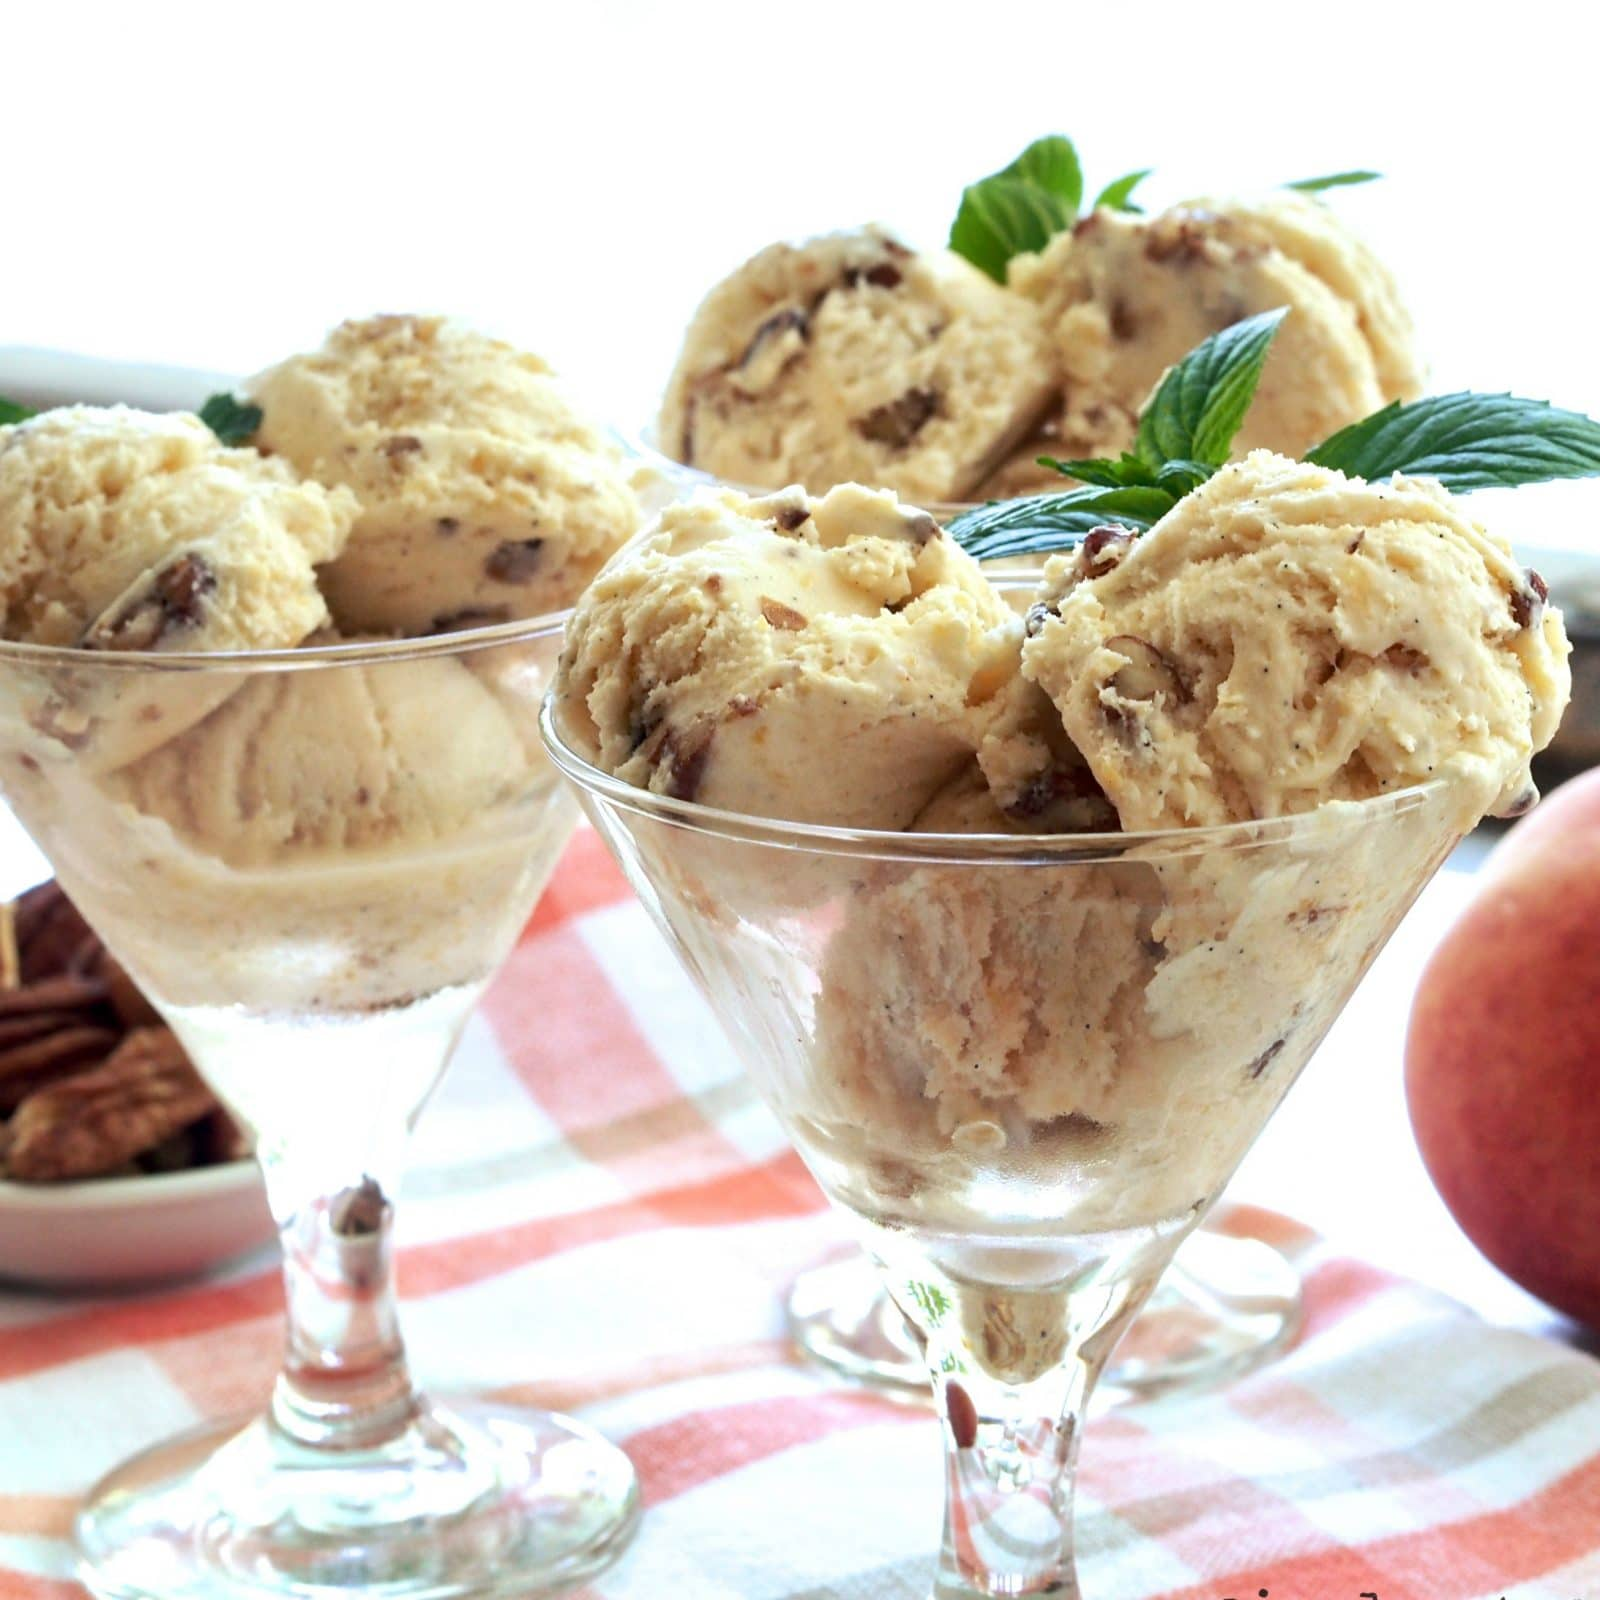 Butter Pecan Peach Ice Cream is peachy, crunchy, creamy, salty and sweet. It has something for everyone. www.simplysated.com